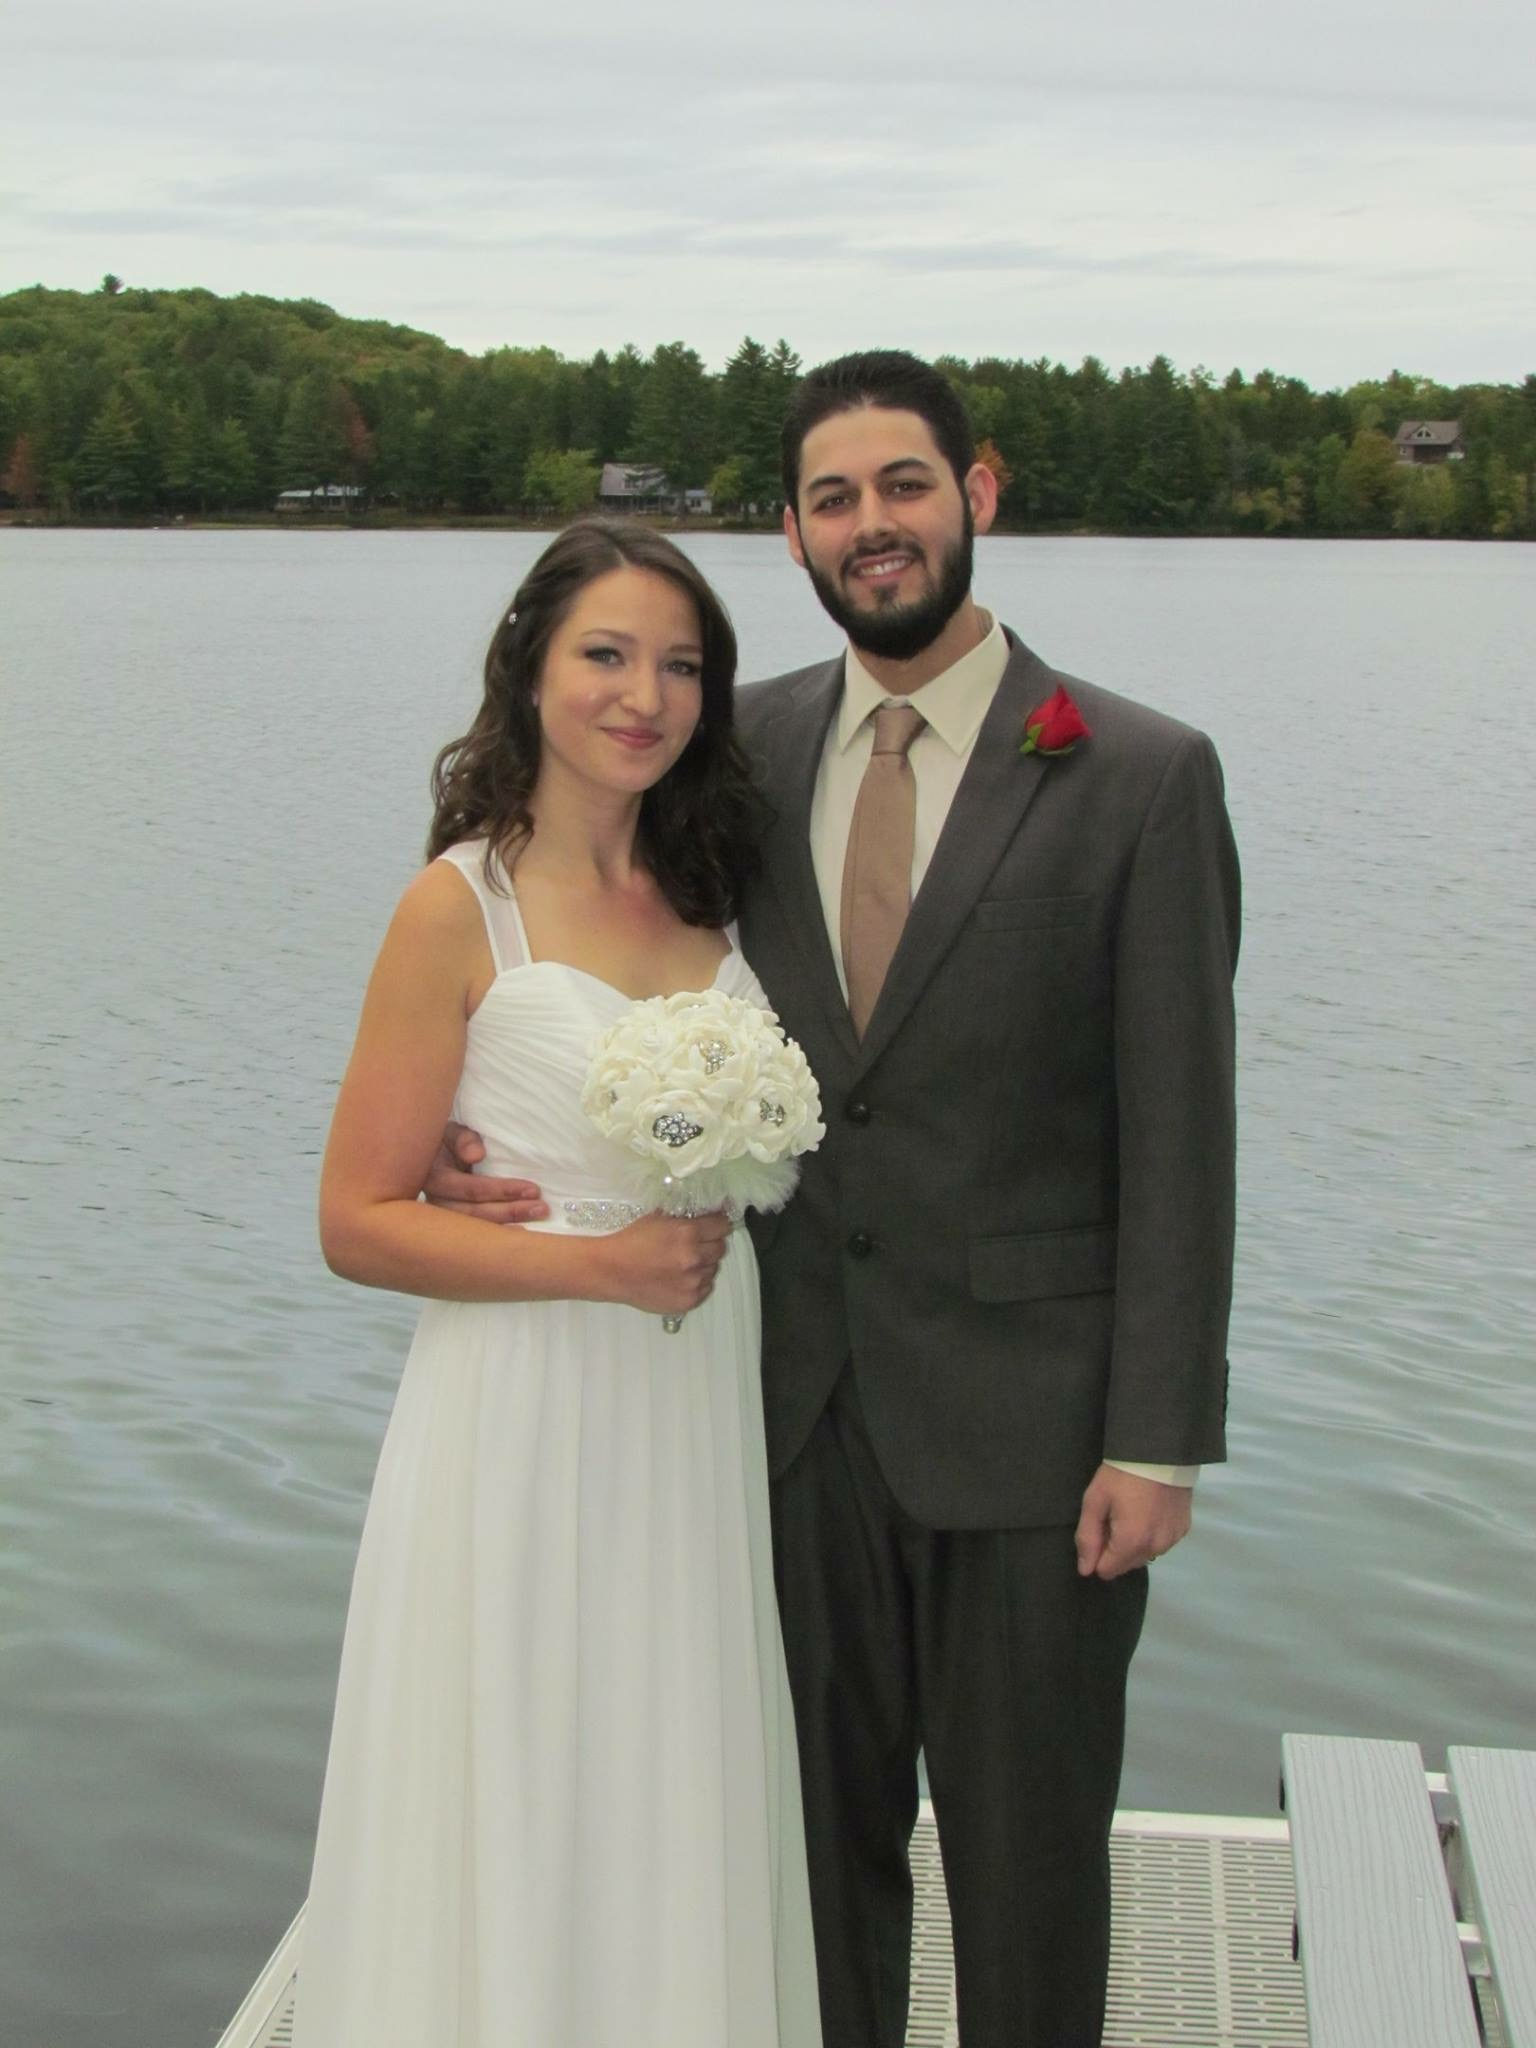 Intimate wedding ceremony at cabin on water in Maine